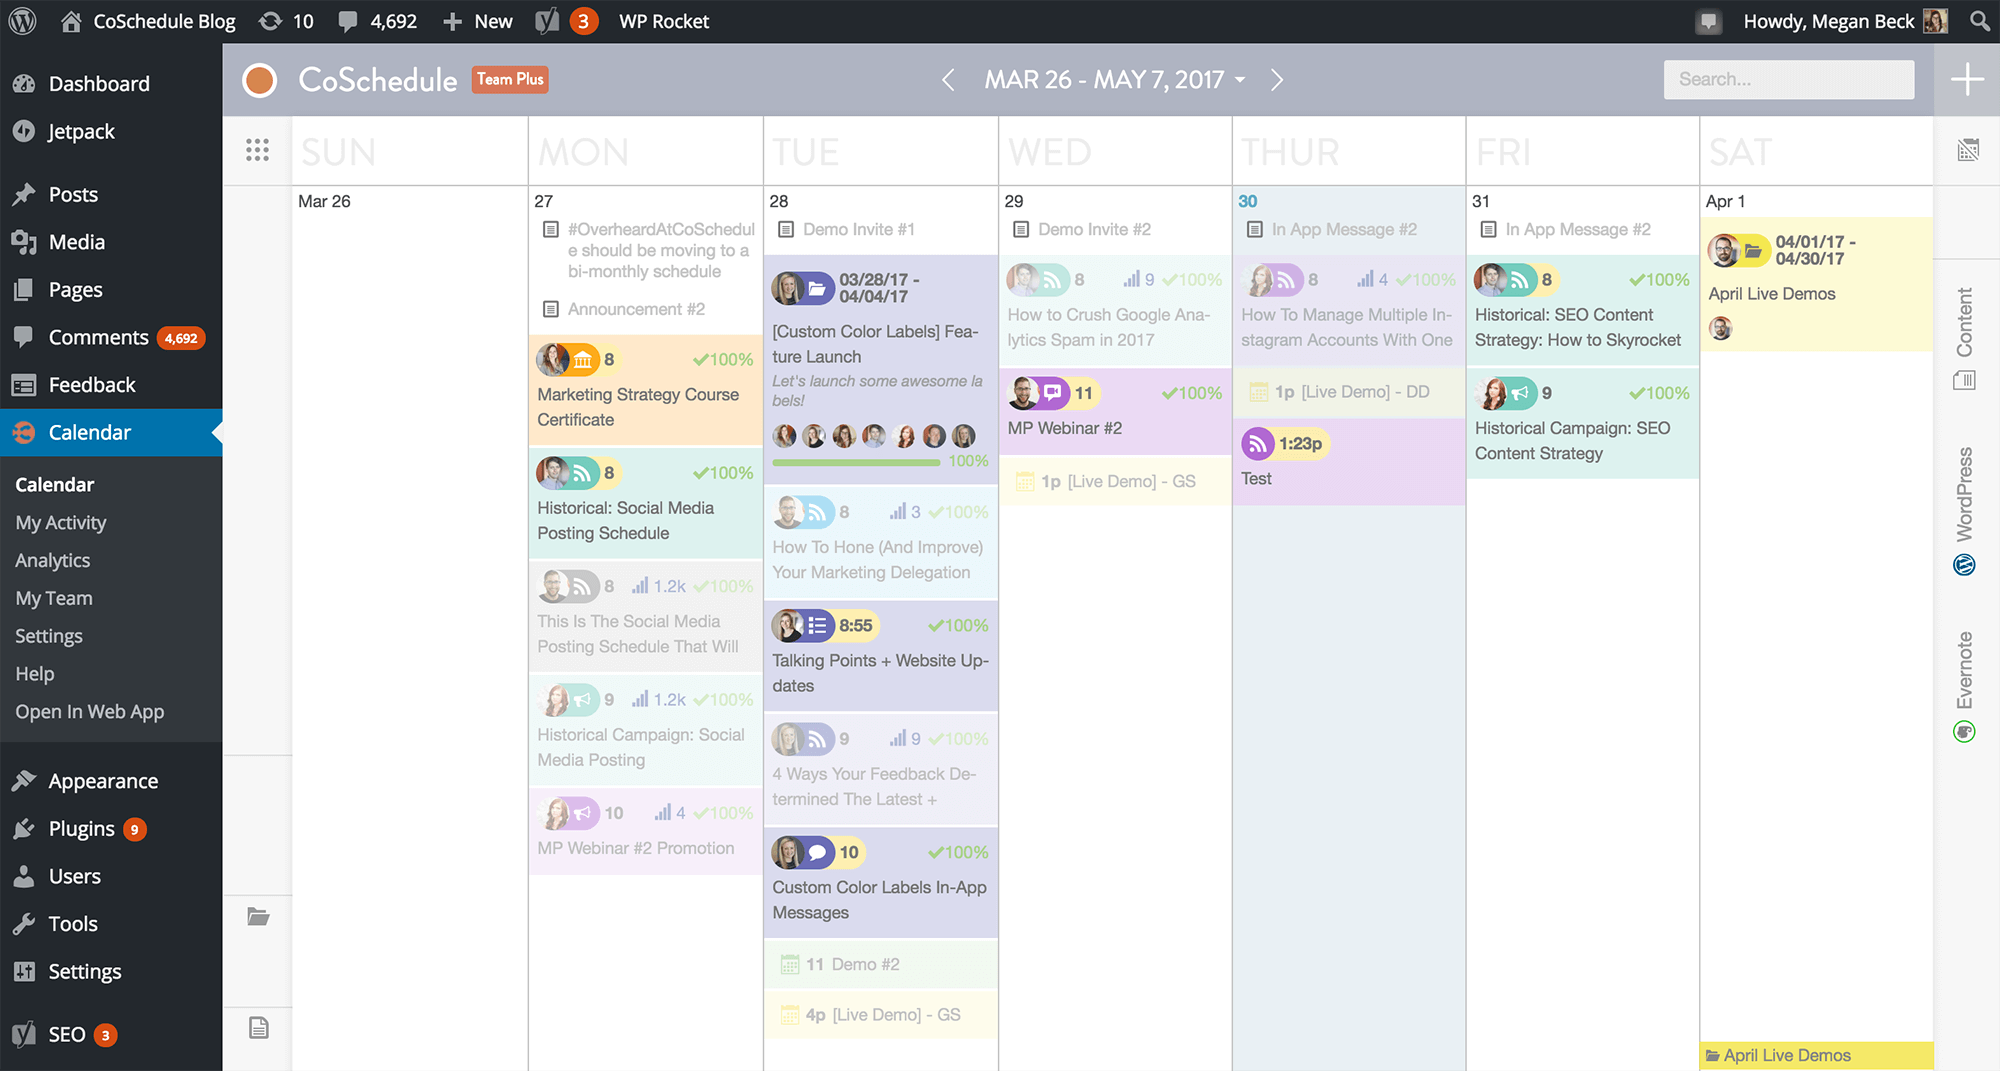 CoSchedule Calendar View